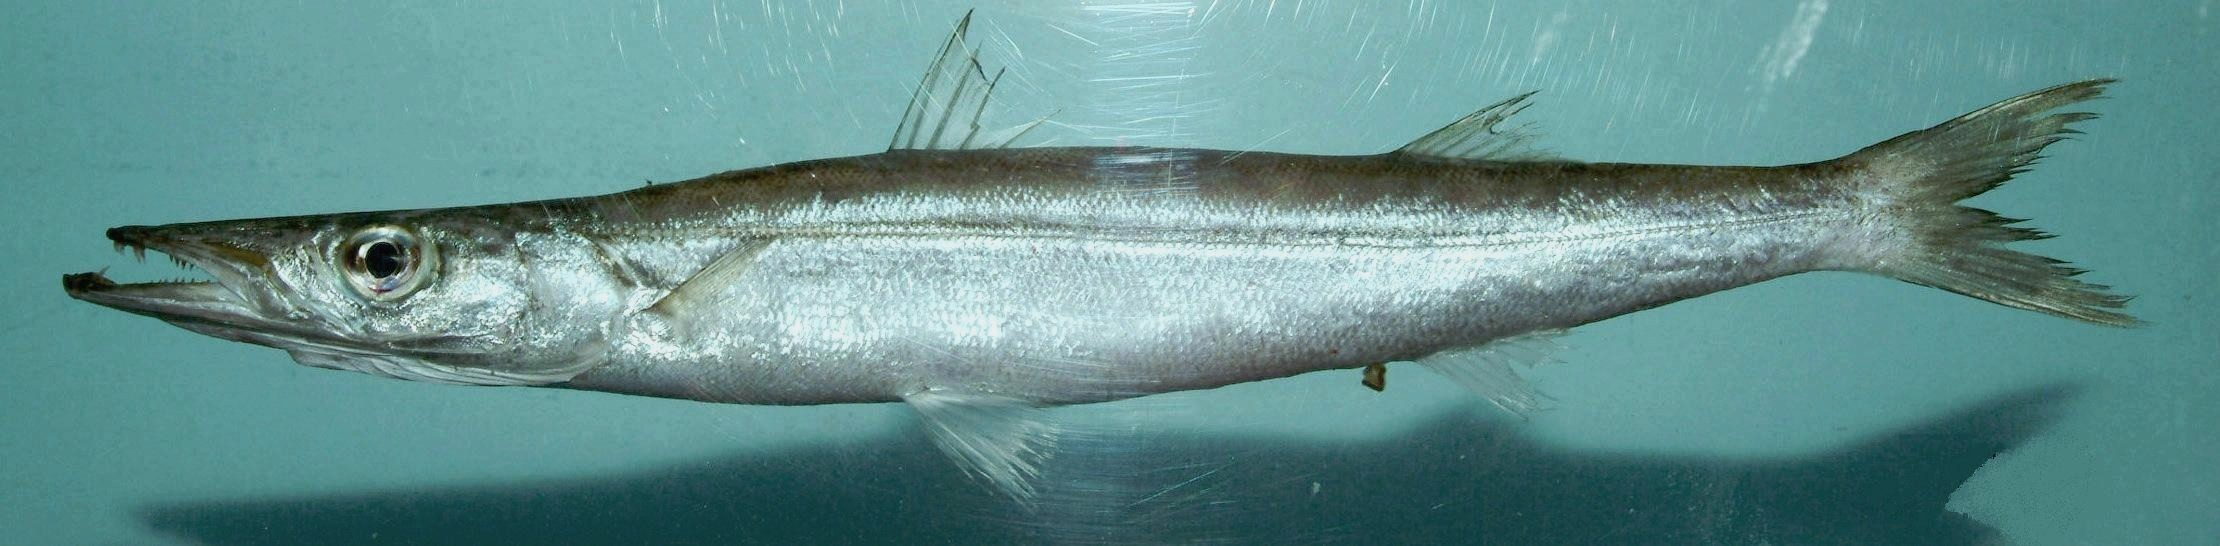 Image of Barracuda